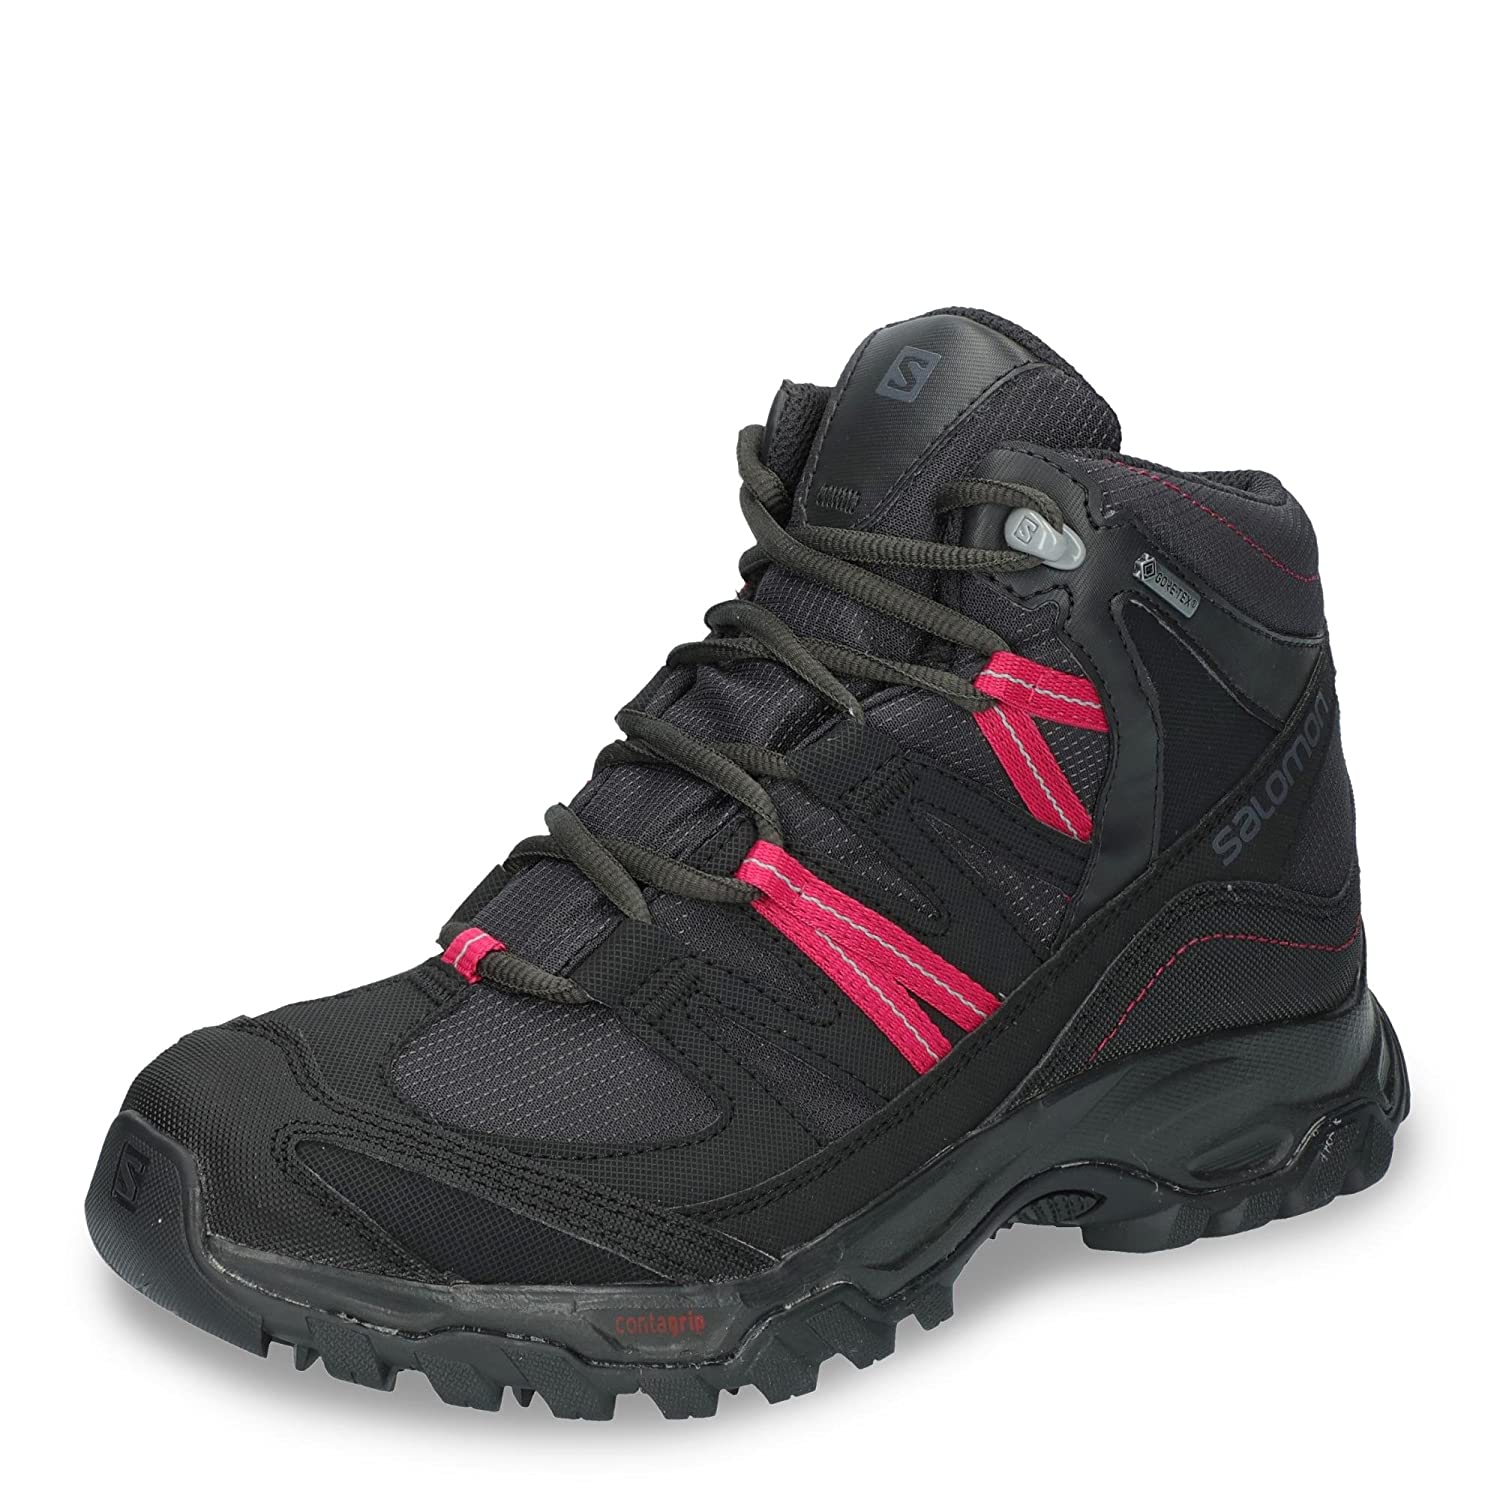 noir& 47;Sangria 6.5 UK Salomon Shindo Mid GTX W